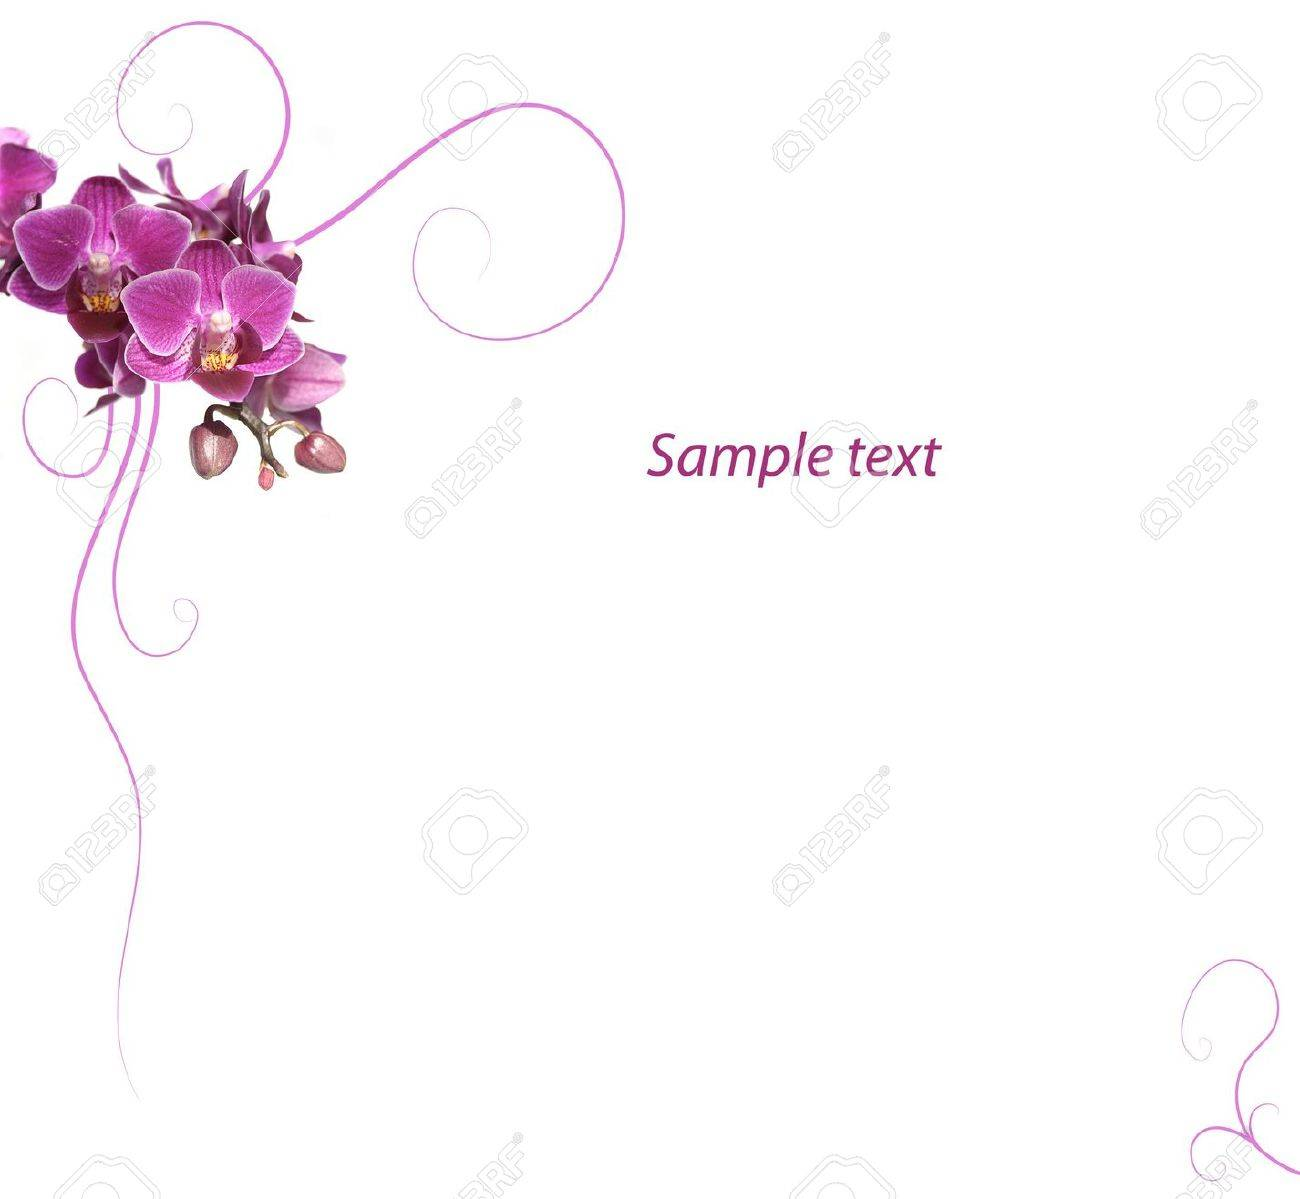 Purple orchid romantic background Stock Photo - 5257656